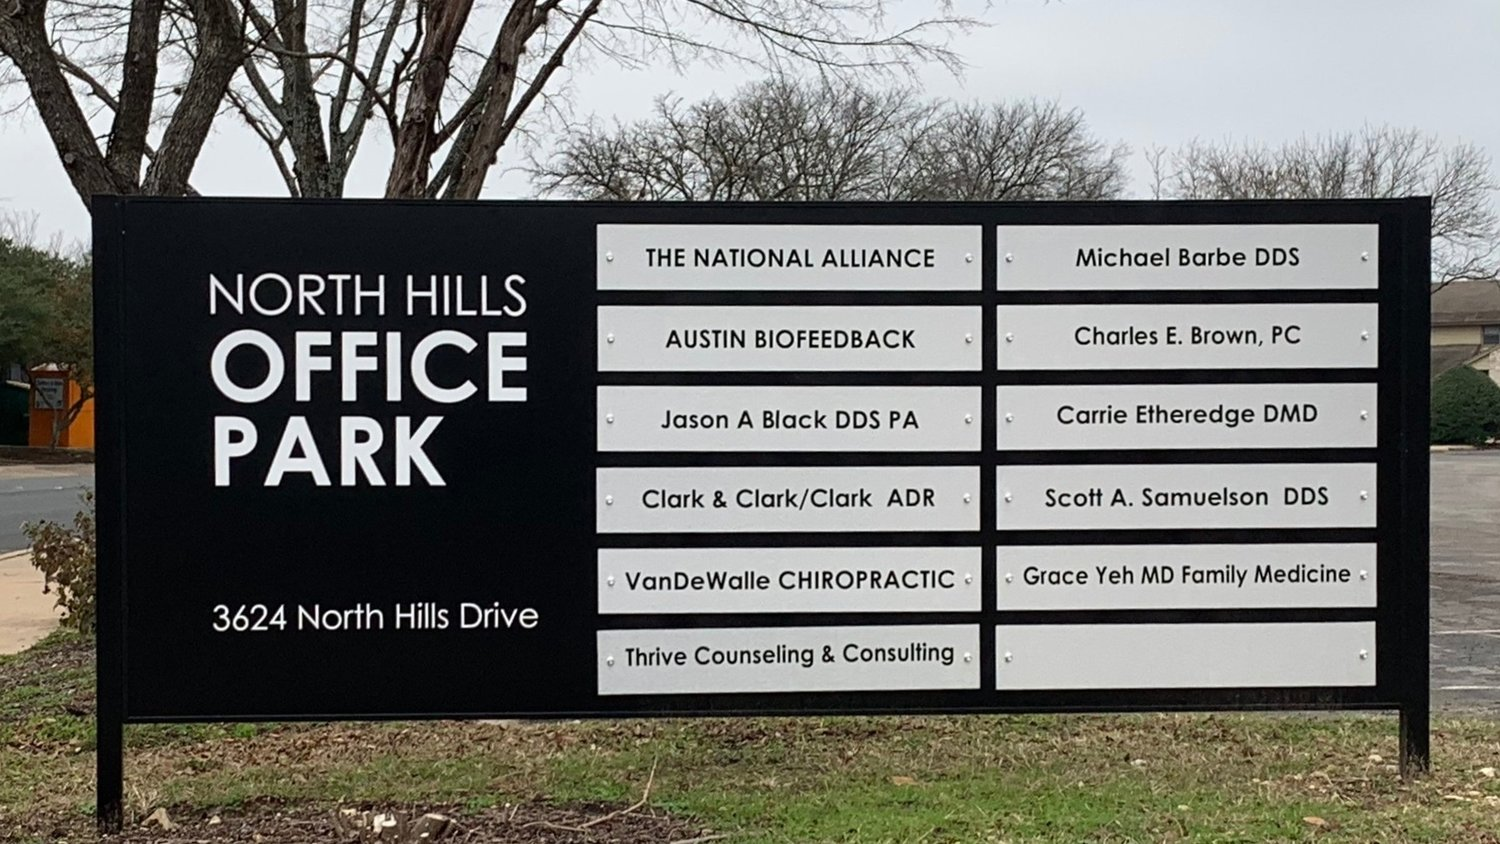 North Hills Office Park